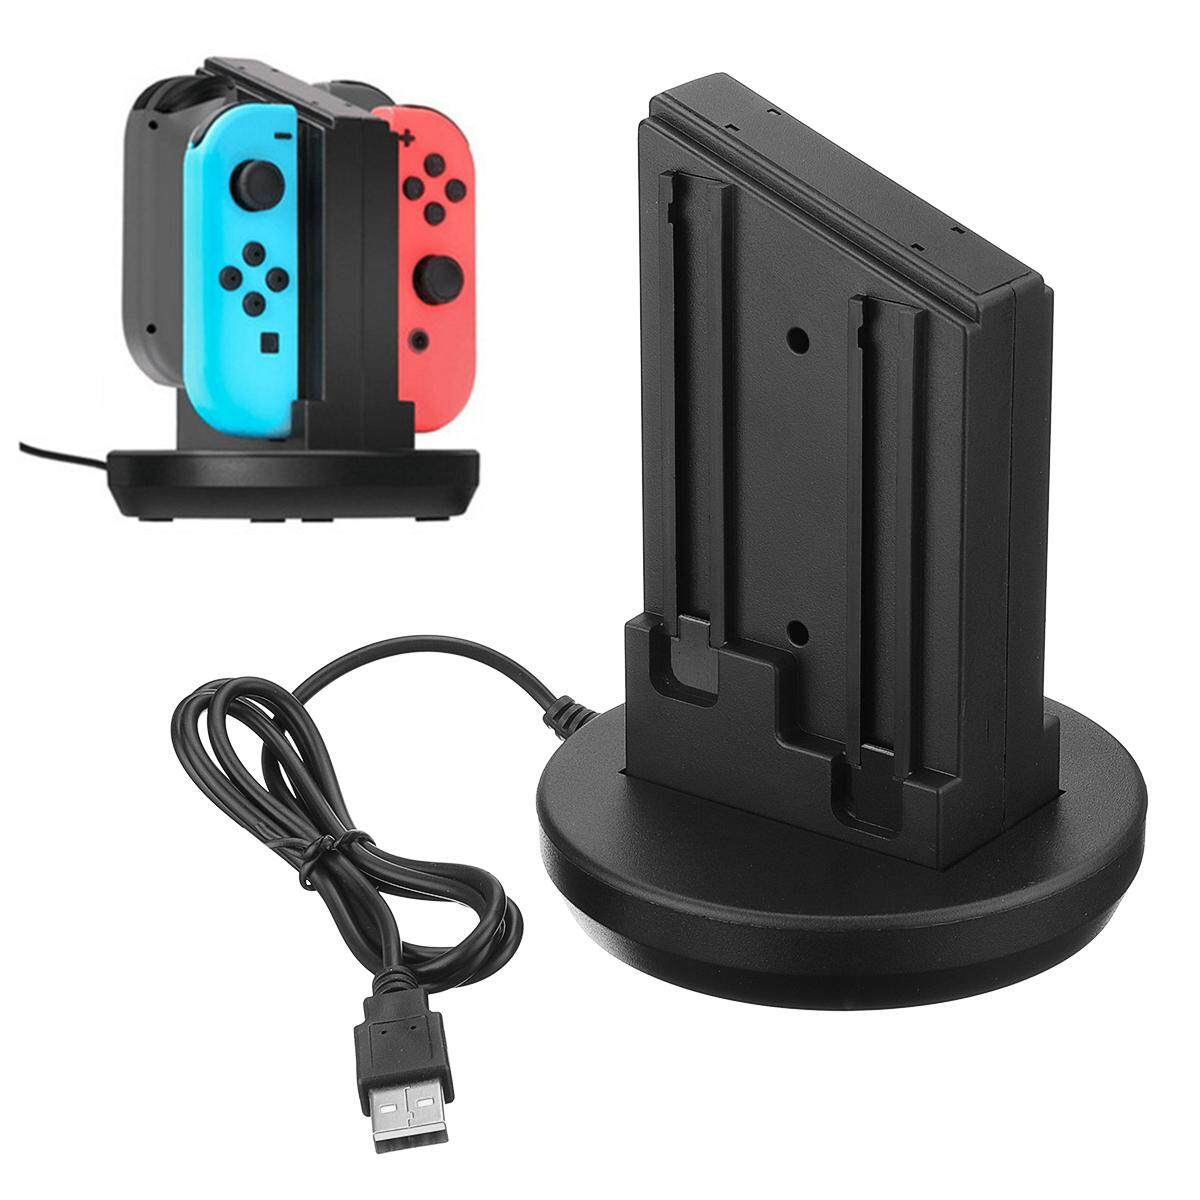 4 in 1 Charging Stand Game Handles Charger for N-Switch Joy-Con Handle Black - intl